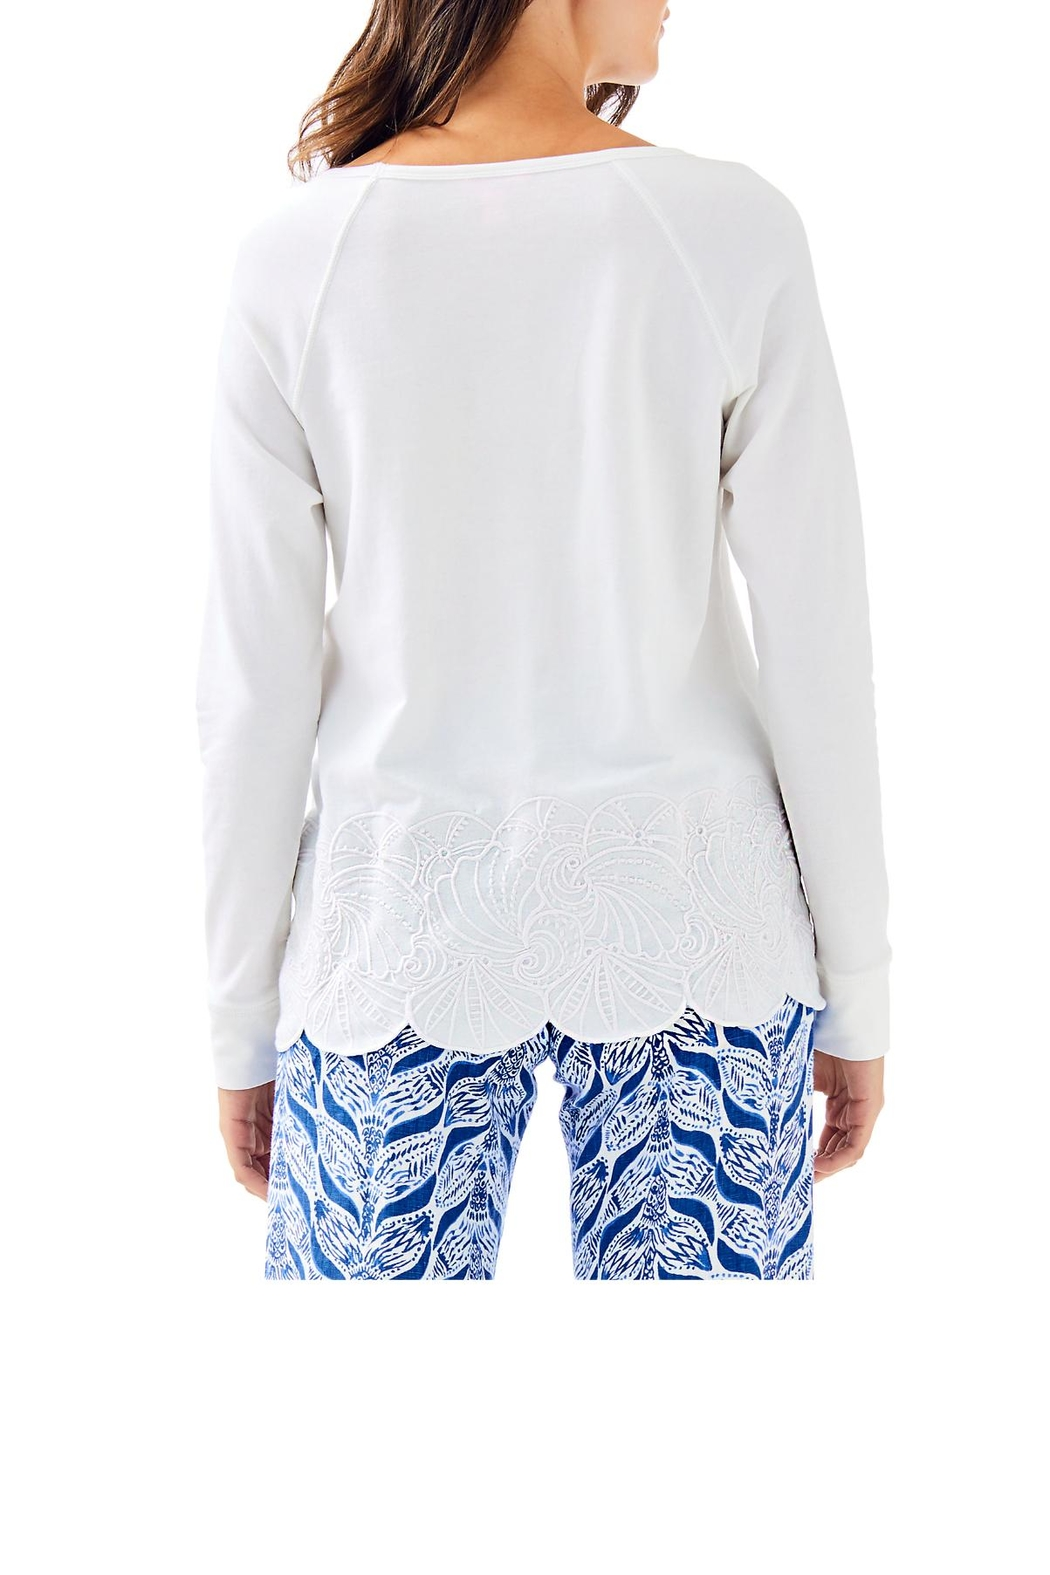 Lilly Pulitzer Sandy Embroidery Popover - Front Full Image